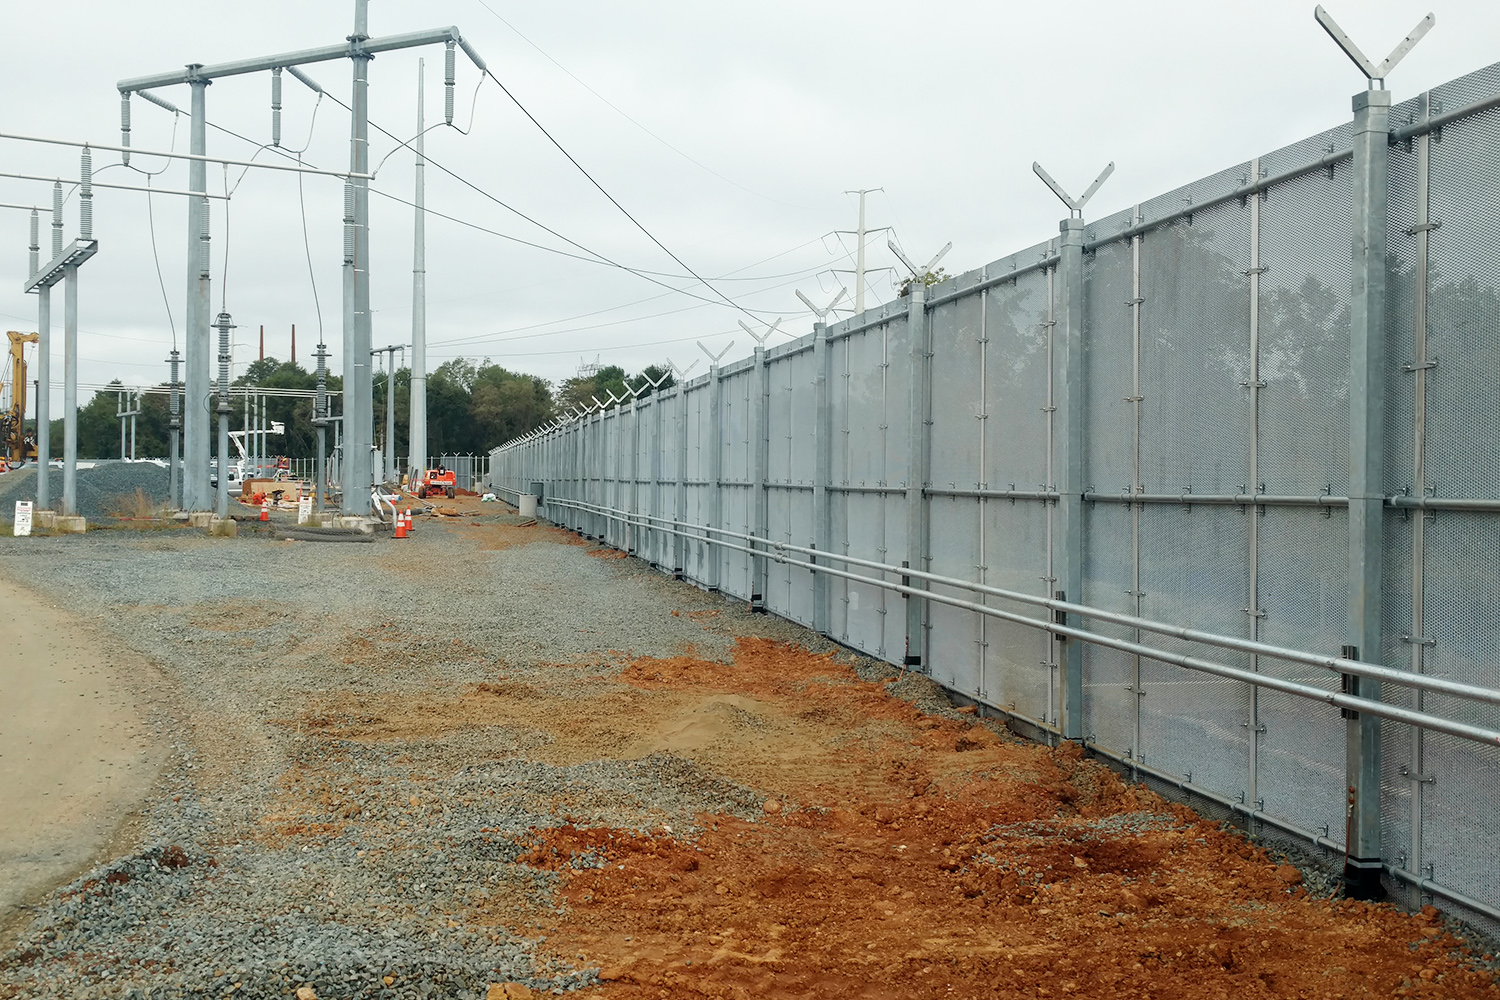 aldridge-electric-utility-specialty-contractor-security-perimeter-protection-electrical-services-nationwide.jpg